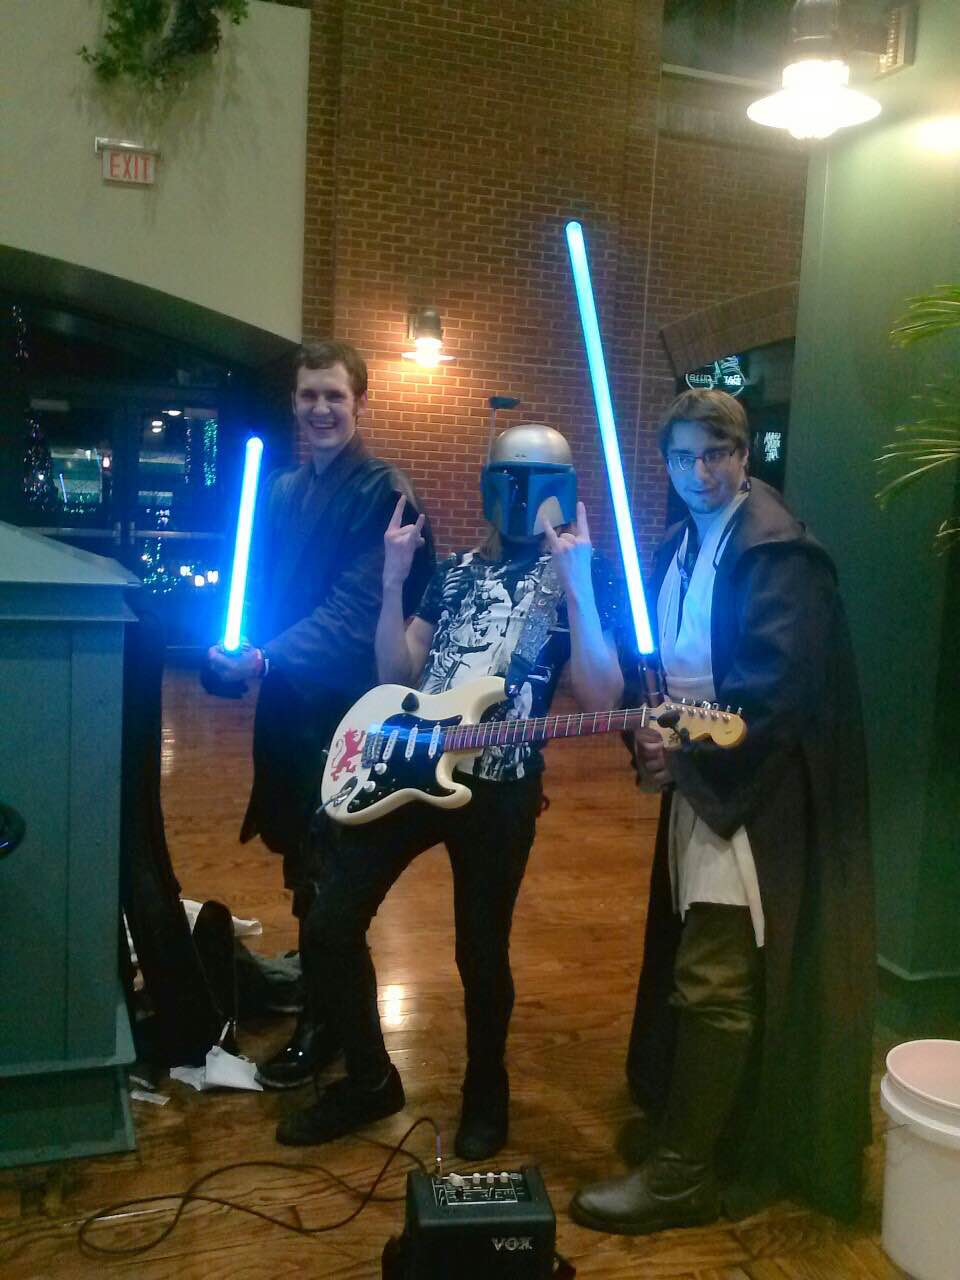 Jared Koshiol hangs out with other Star Wars fans. Koshiol is wearing a Jango Fett helmet.